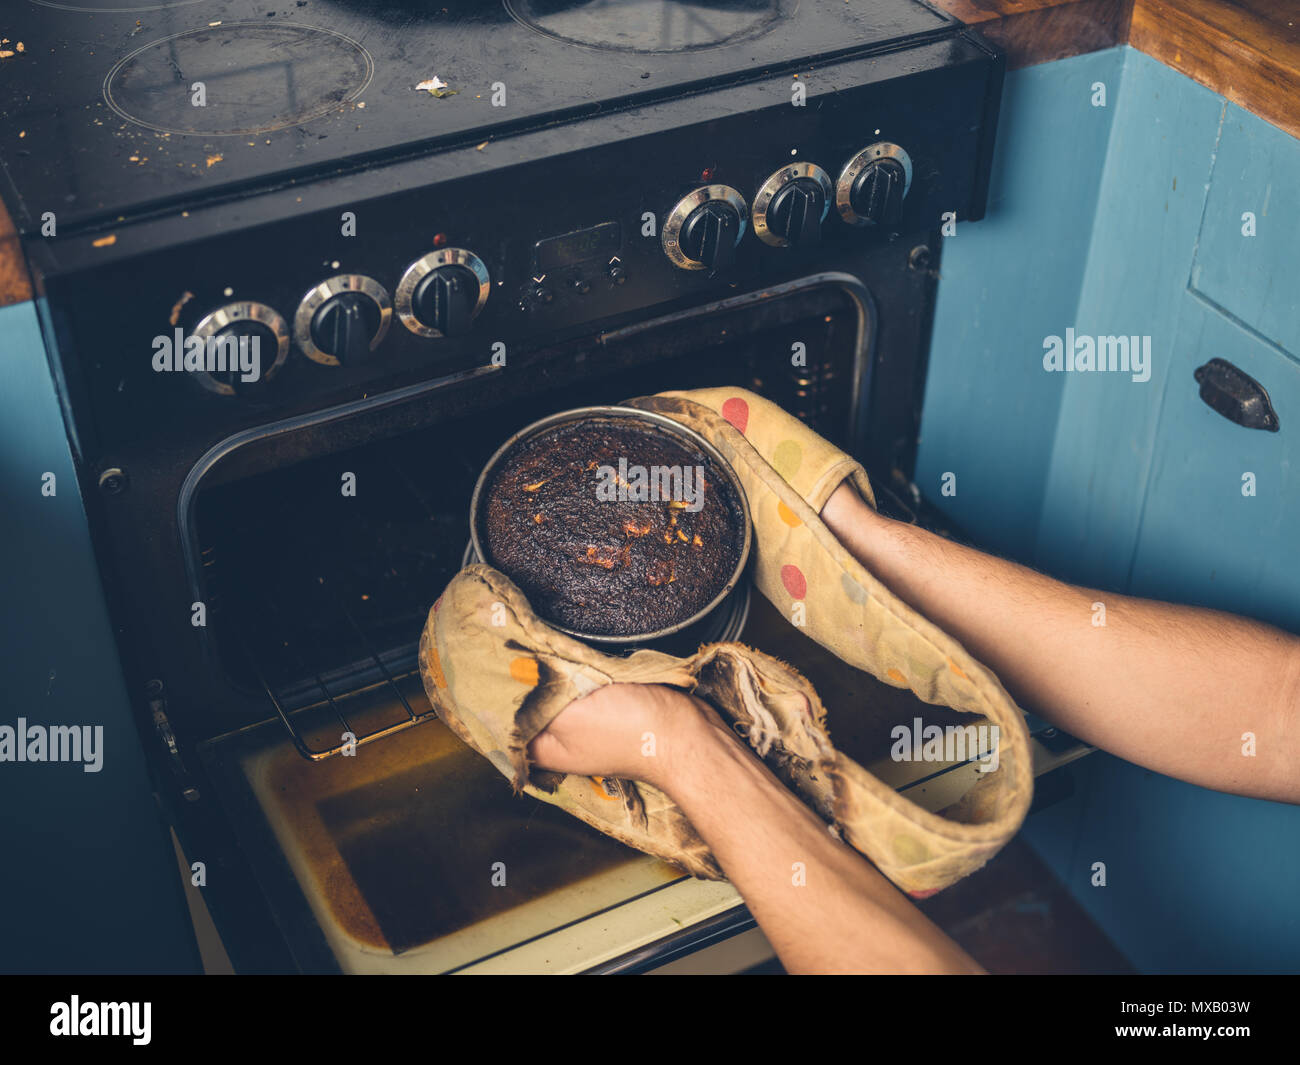 The hands of a man is removing a burnt cake from the oven - Stock Image